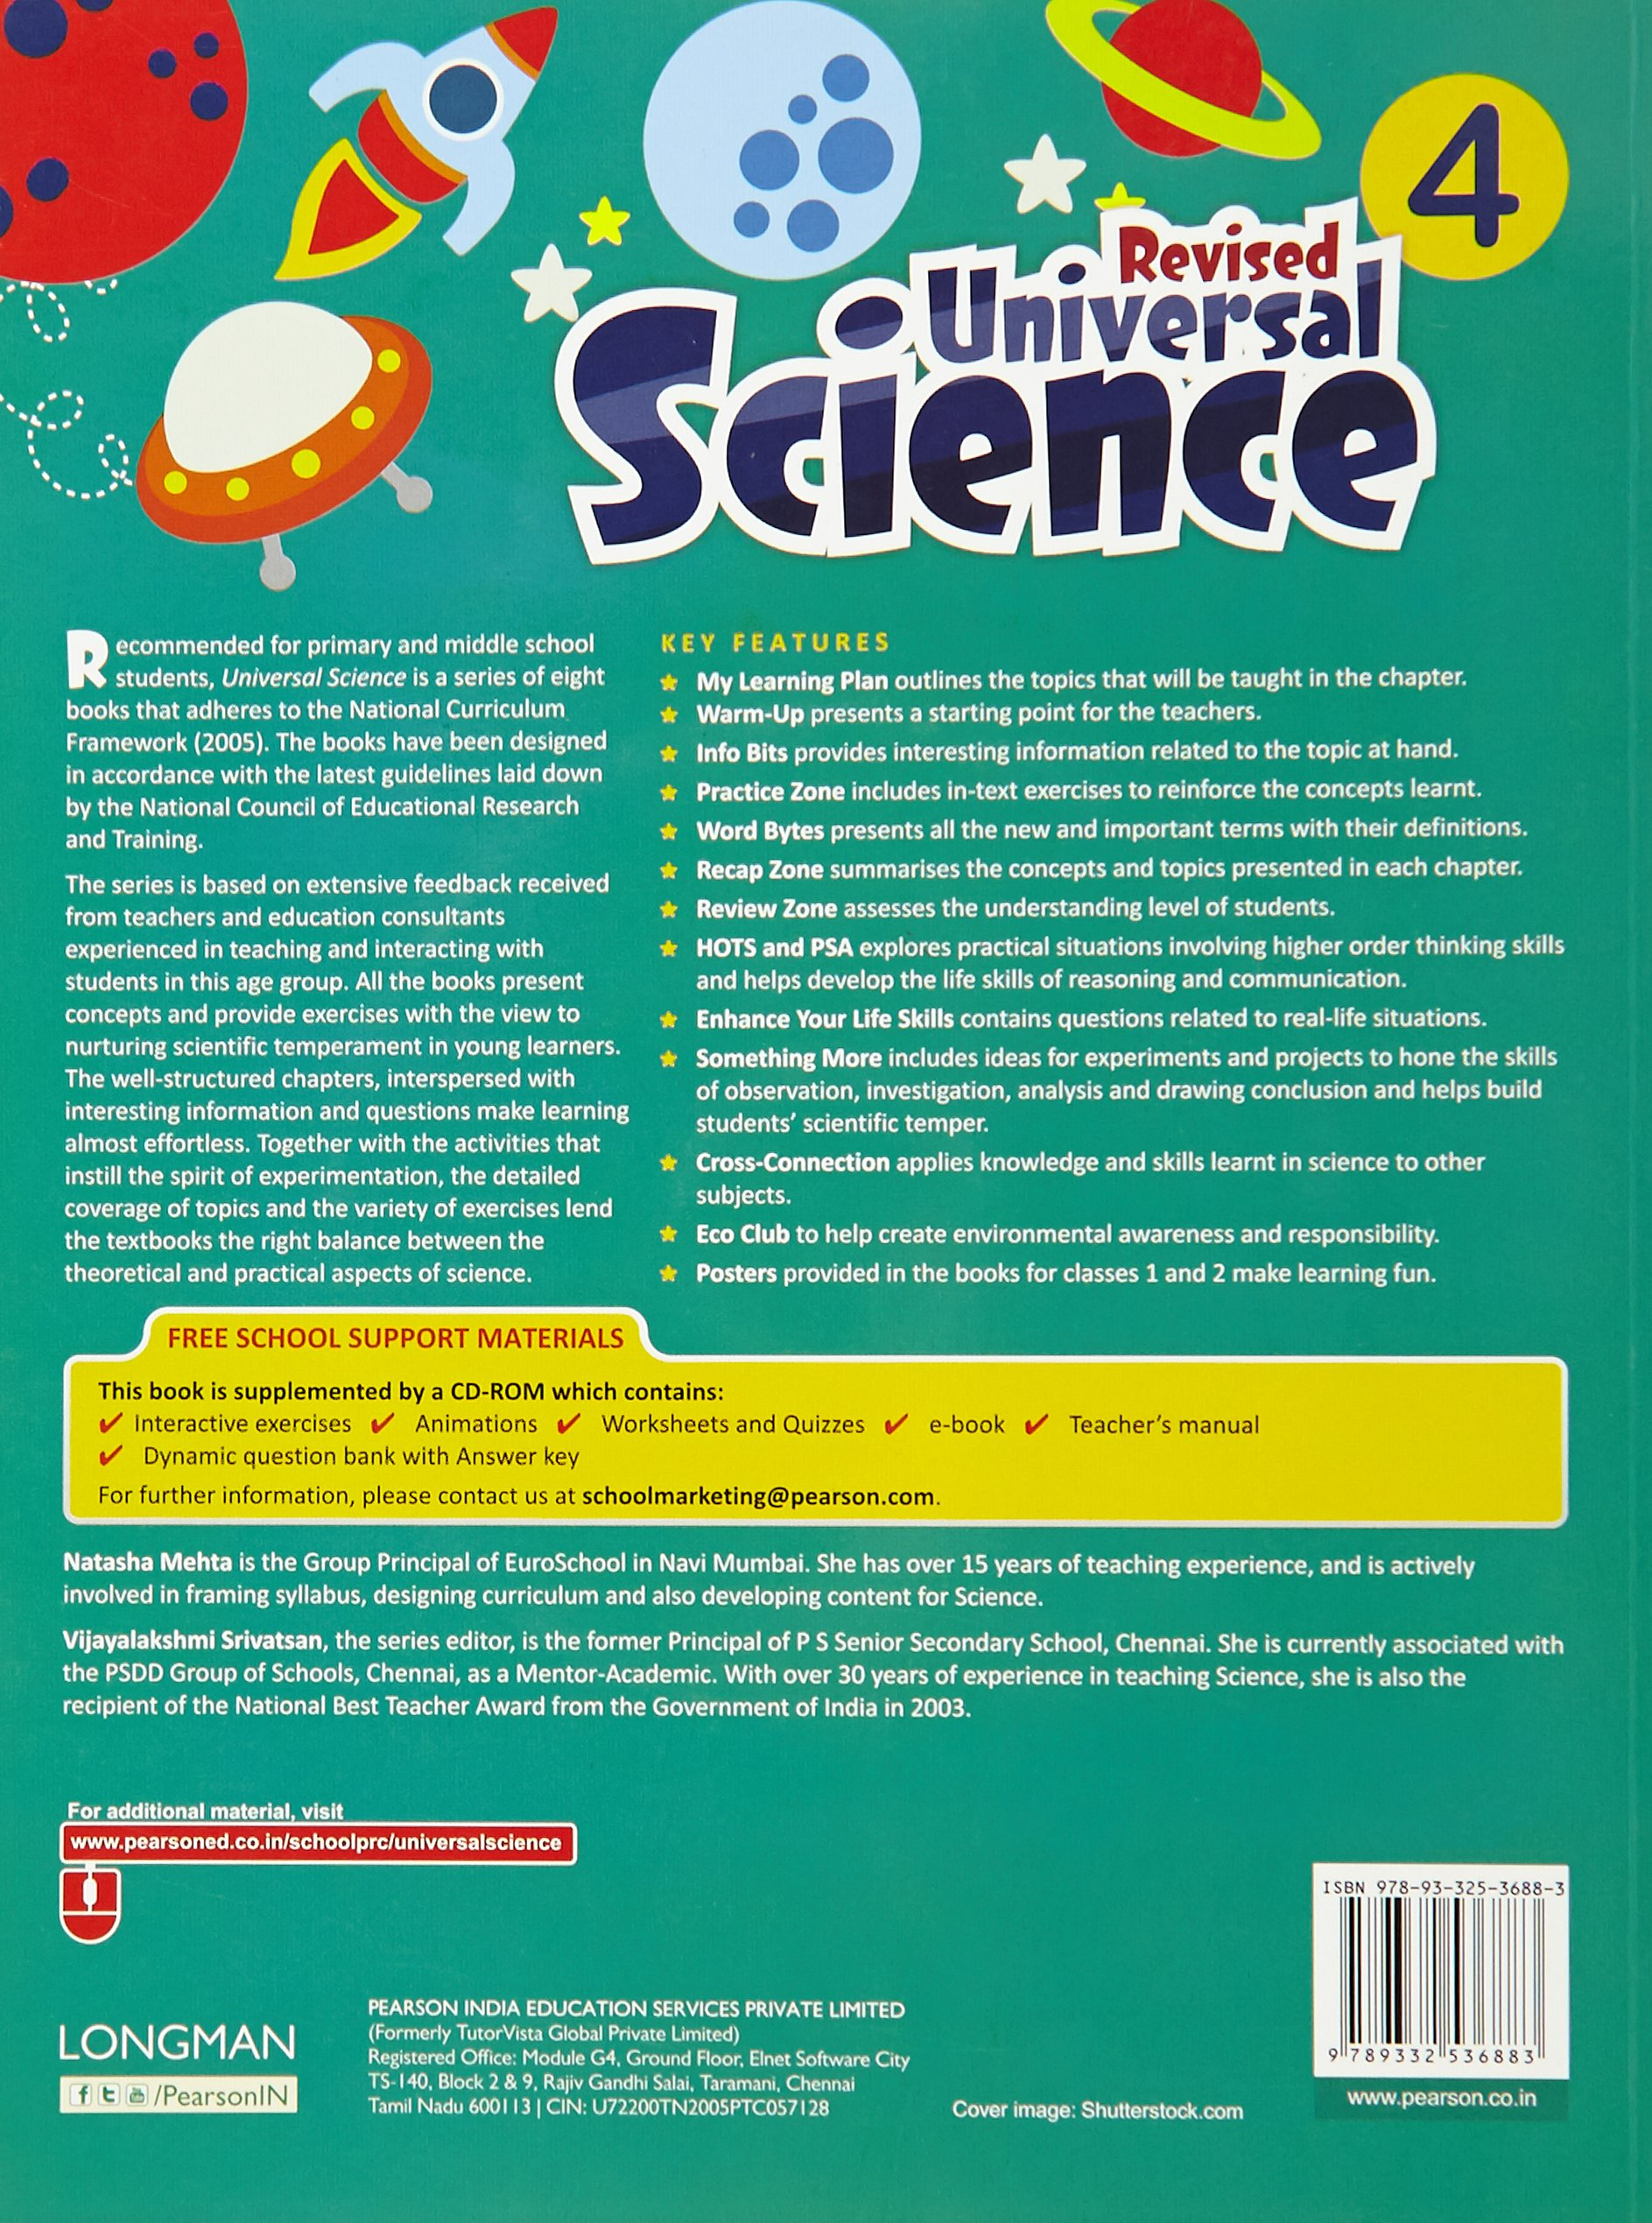 Universal Science by Pearson for CBSE Class 4: Amazon.in: Natasha ...